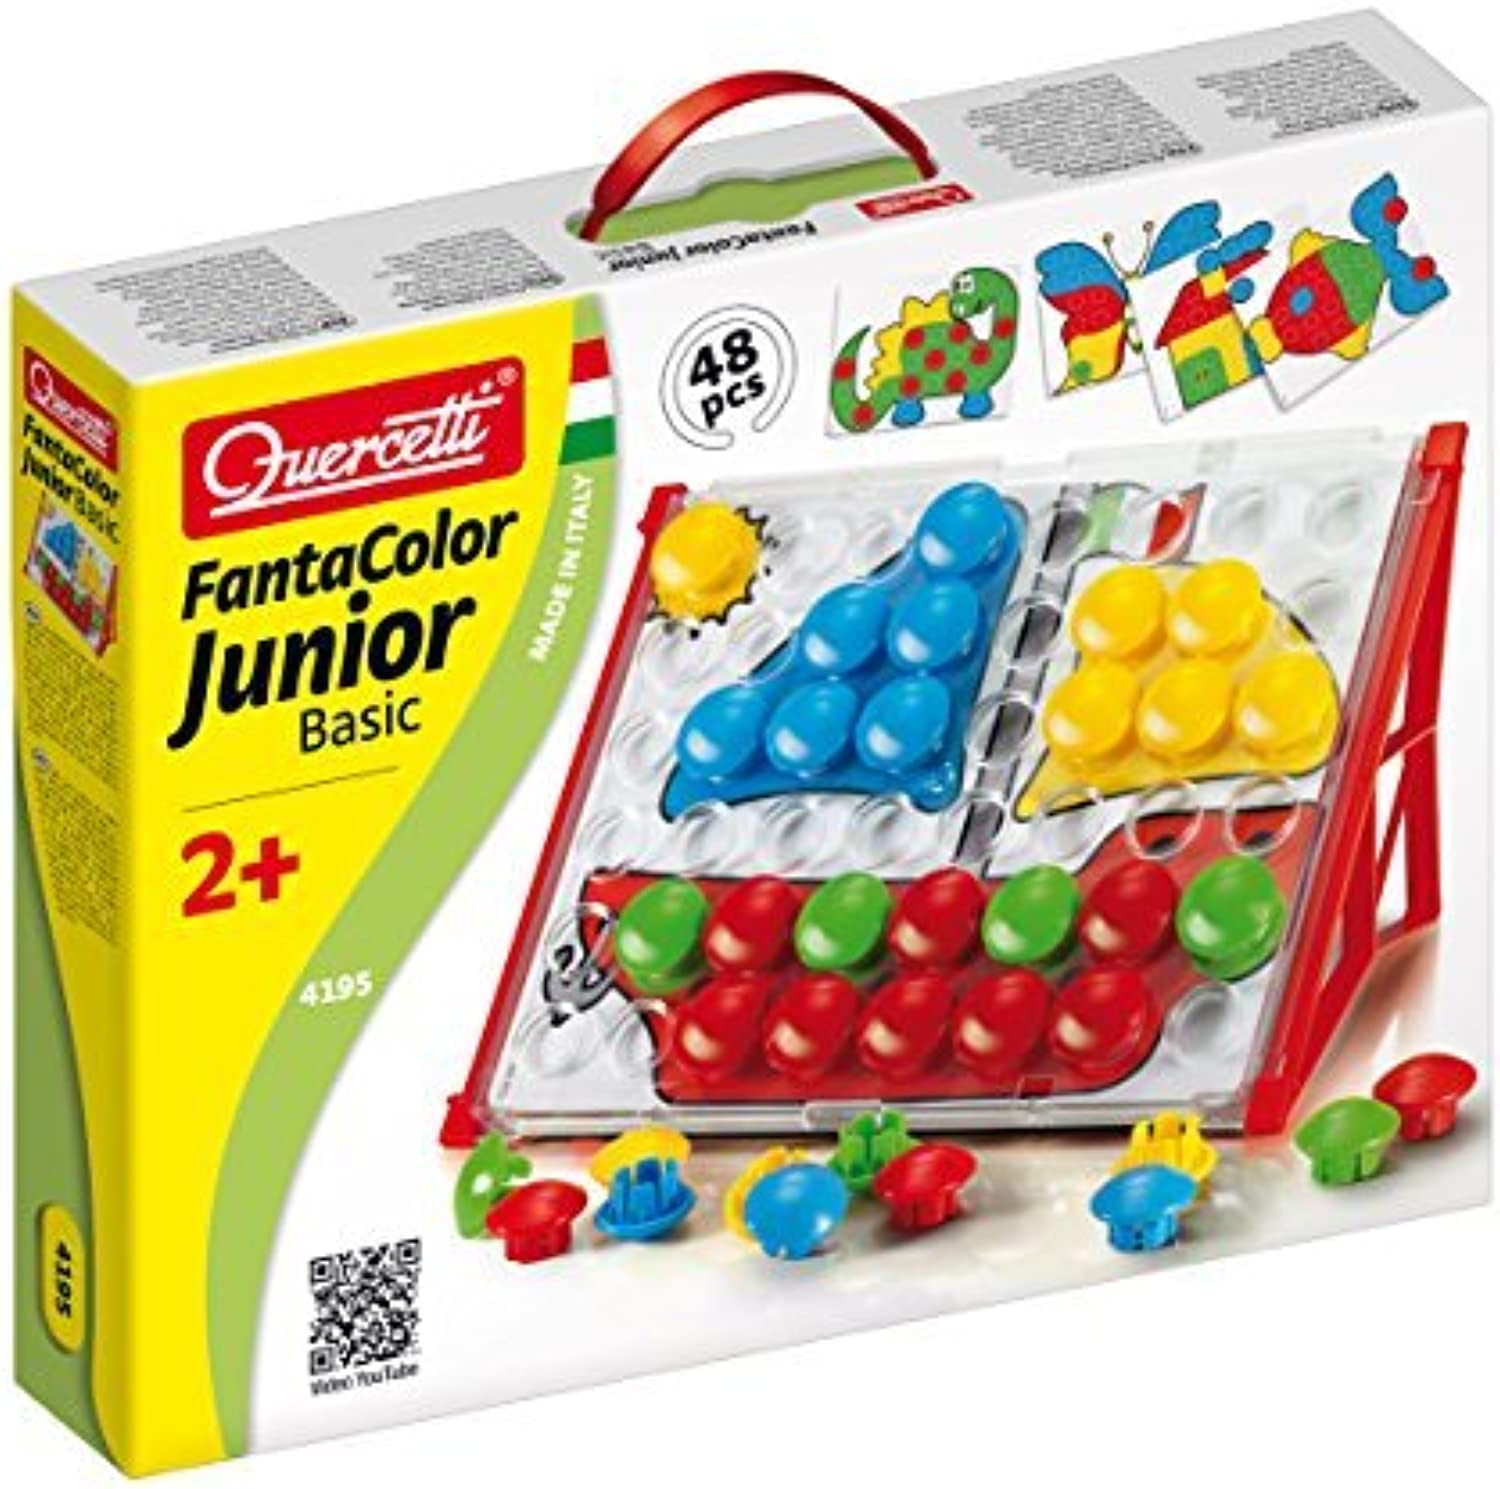 Quercetti Fantacolor Junior Basic Baby Toy by Quercetti